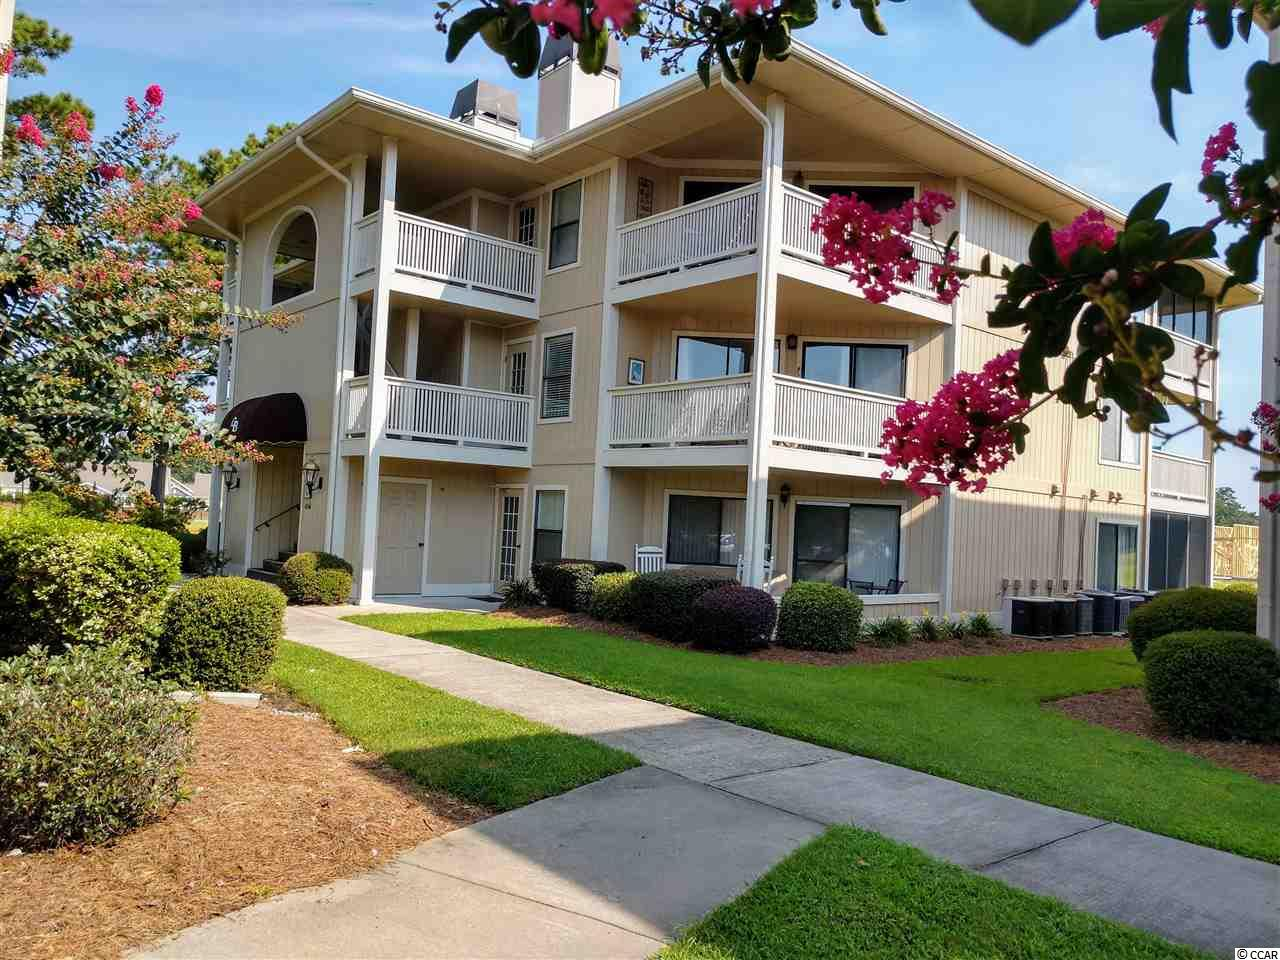 Unit recently remodeled 2br/back condo with fireplace.   Great view overlooking  amenities  and lake of the Cypress Village community.  Unit has granite  countertops,  built-in  U-line Wine Cooler, beautiful  hardwood  floor, chair rail  and 2 yr old heating & cooling  system.